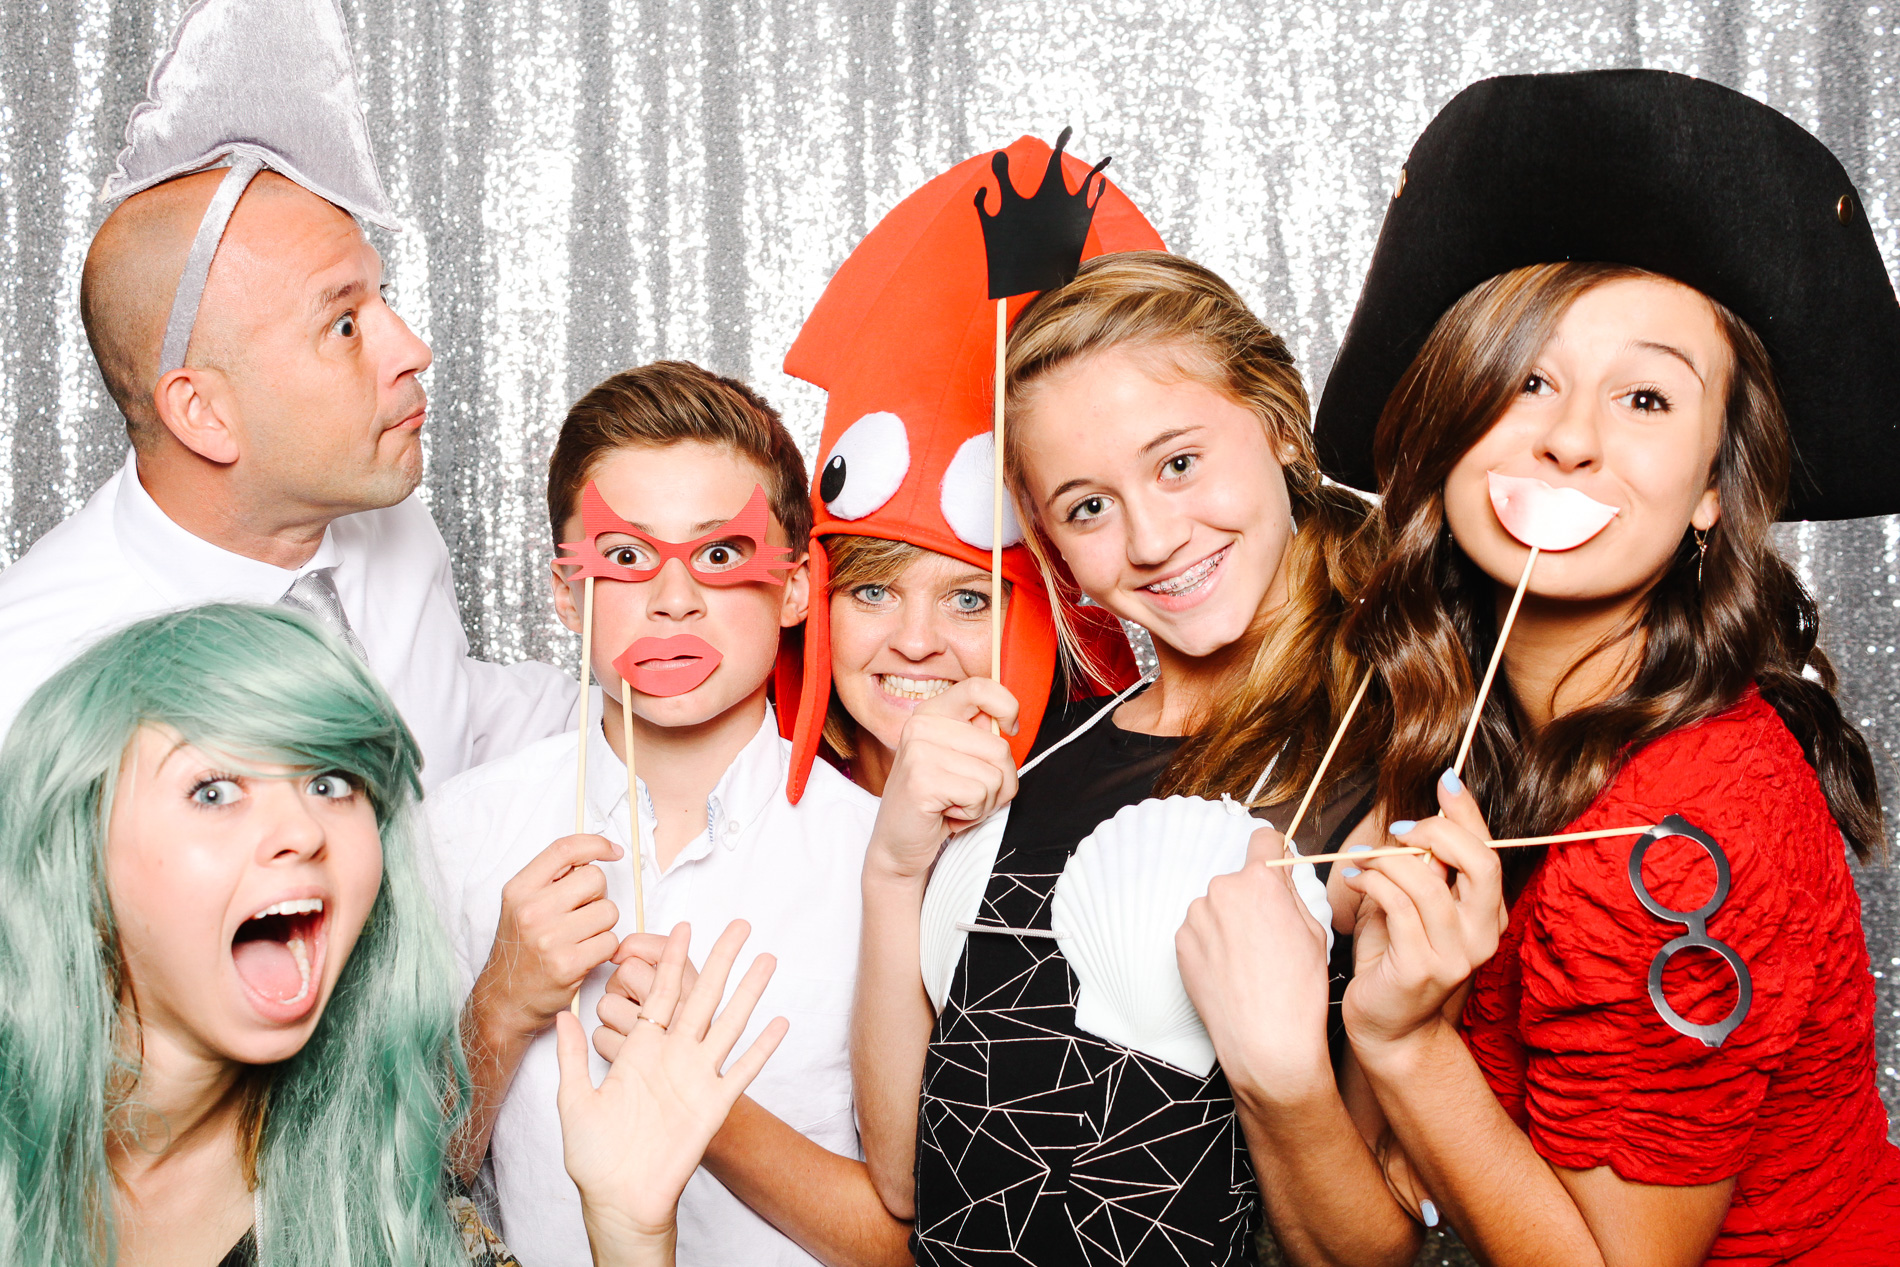 grin-and-bear-booth-photobooth-181240.jpg